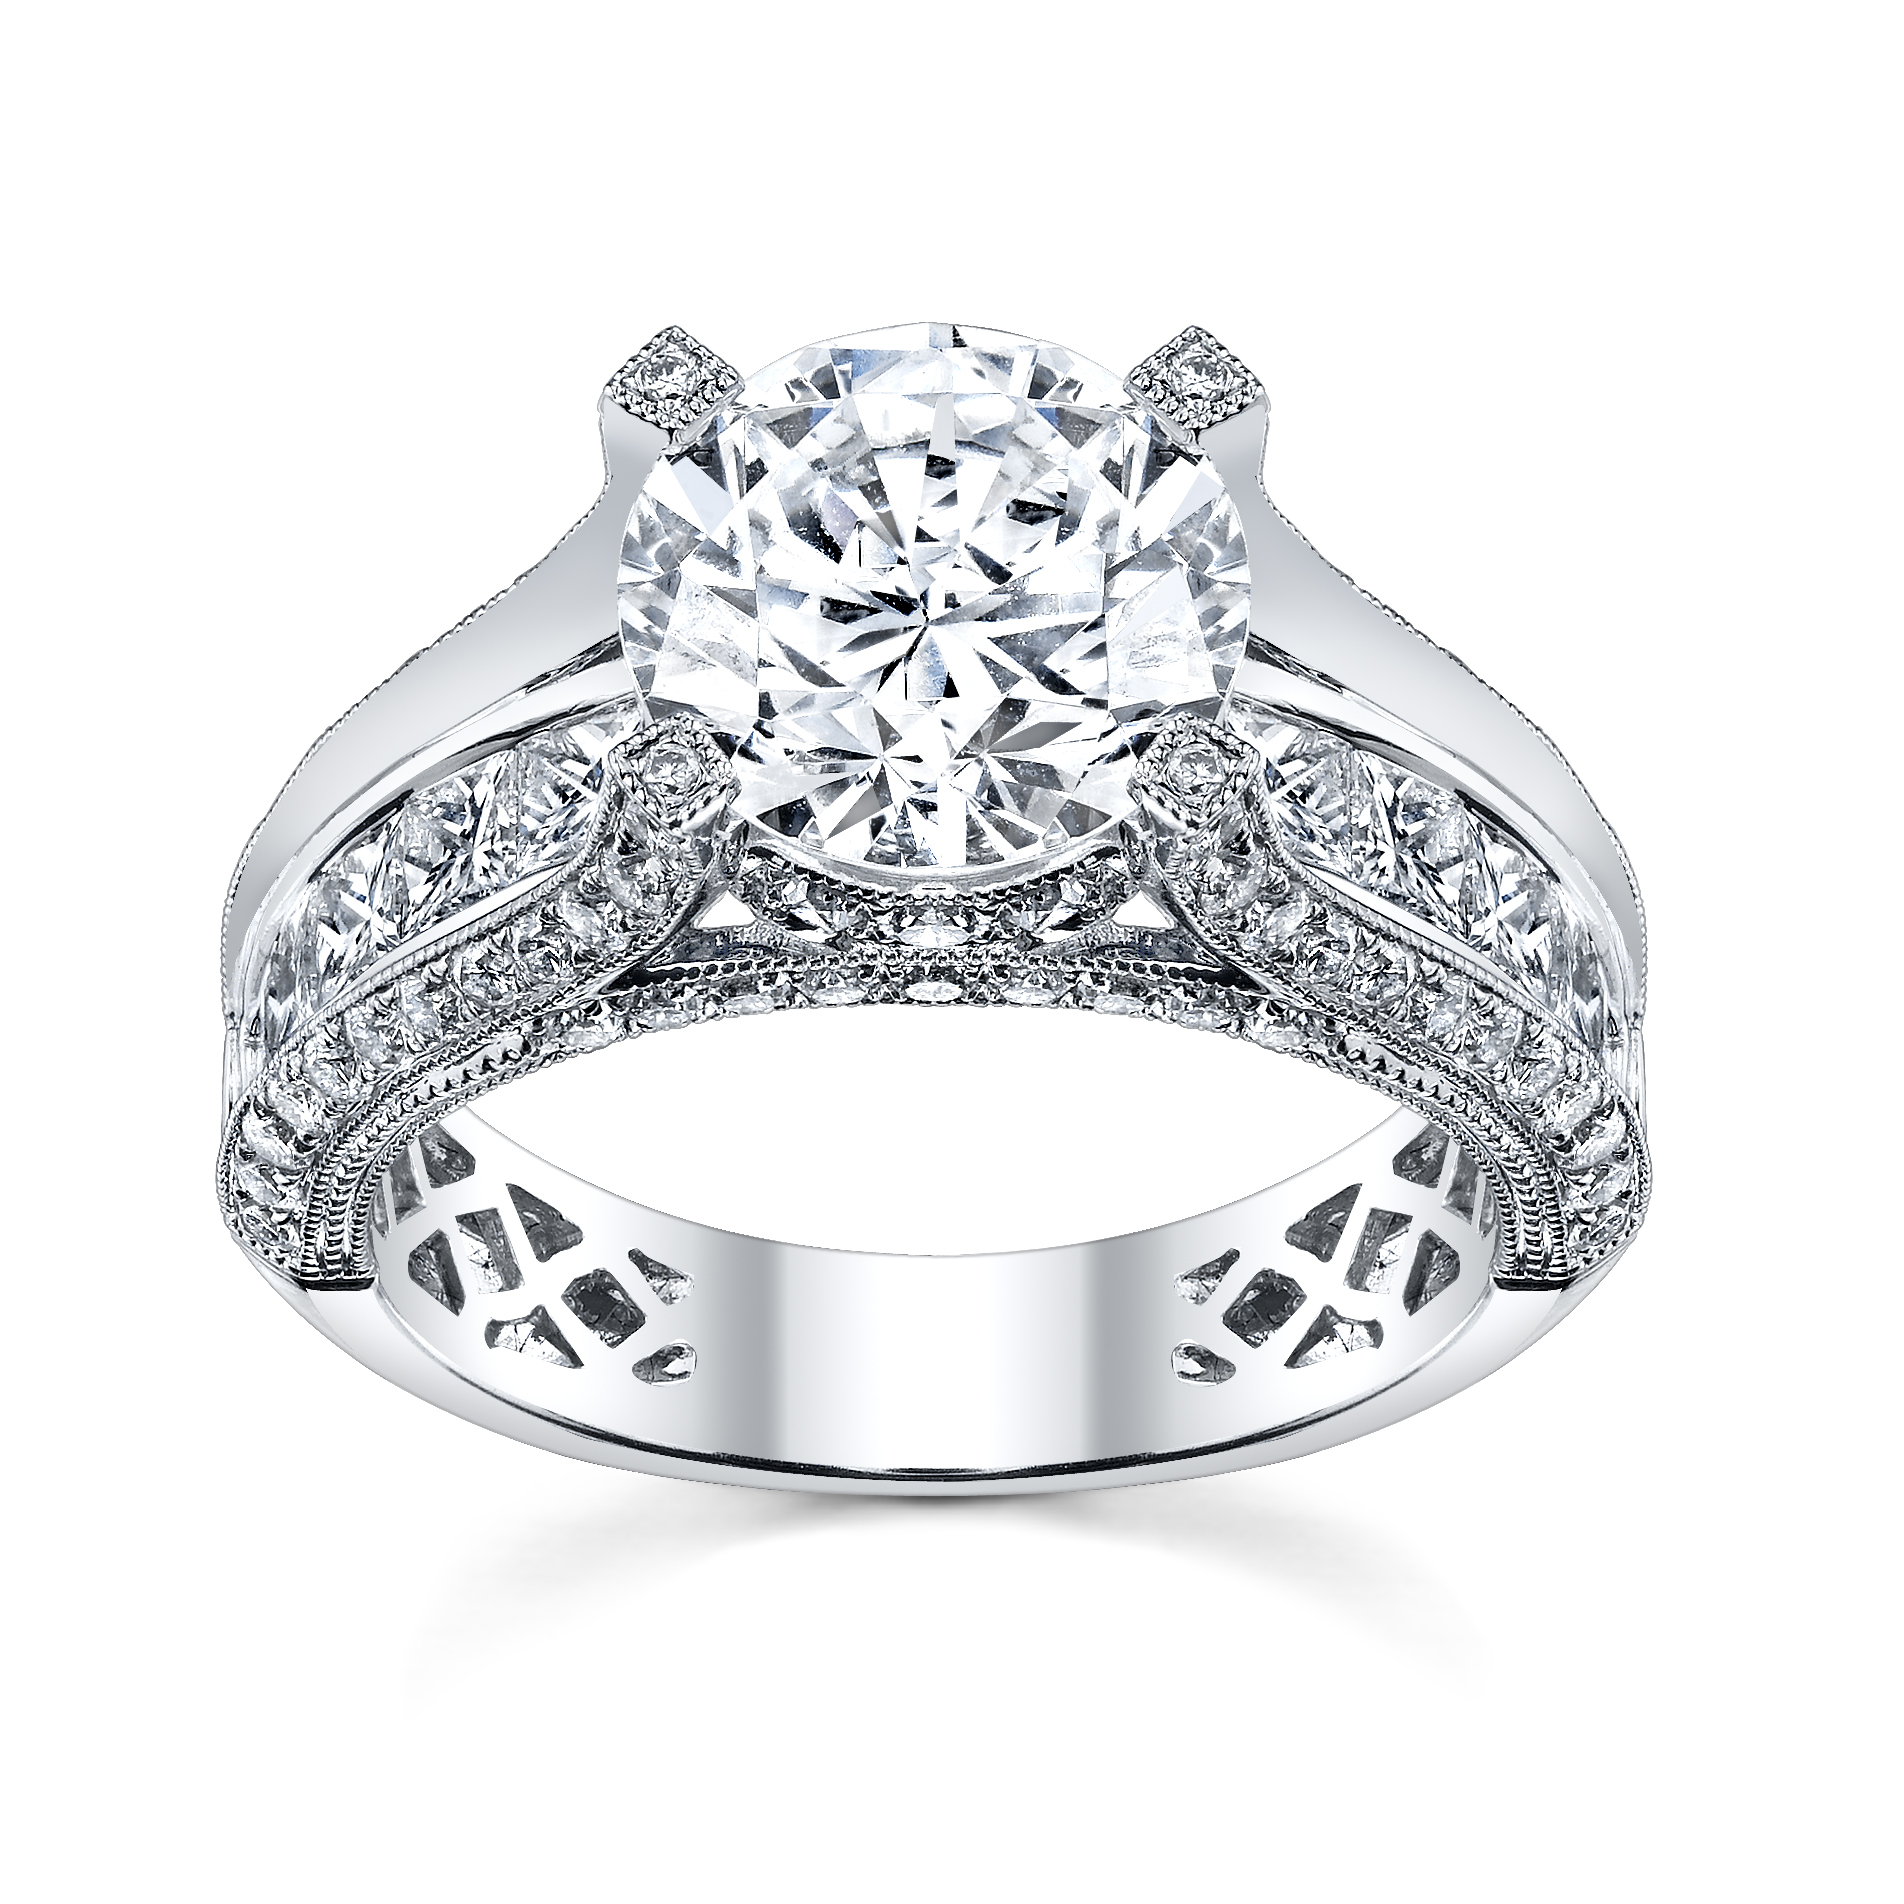 supreme engagement ring 0388668 - Extravagant Wedding Rings